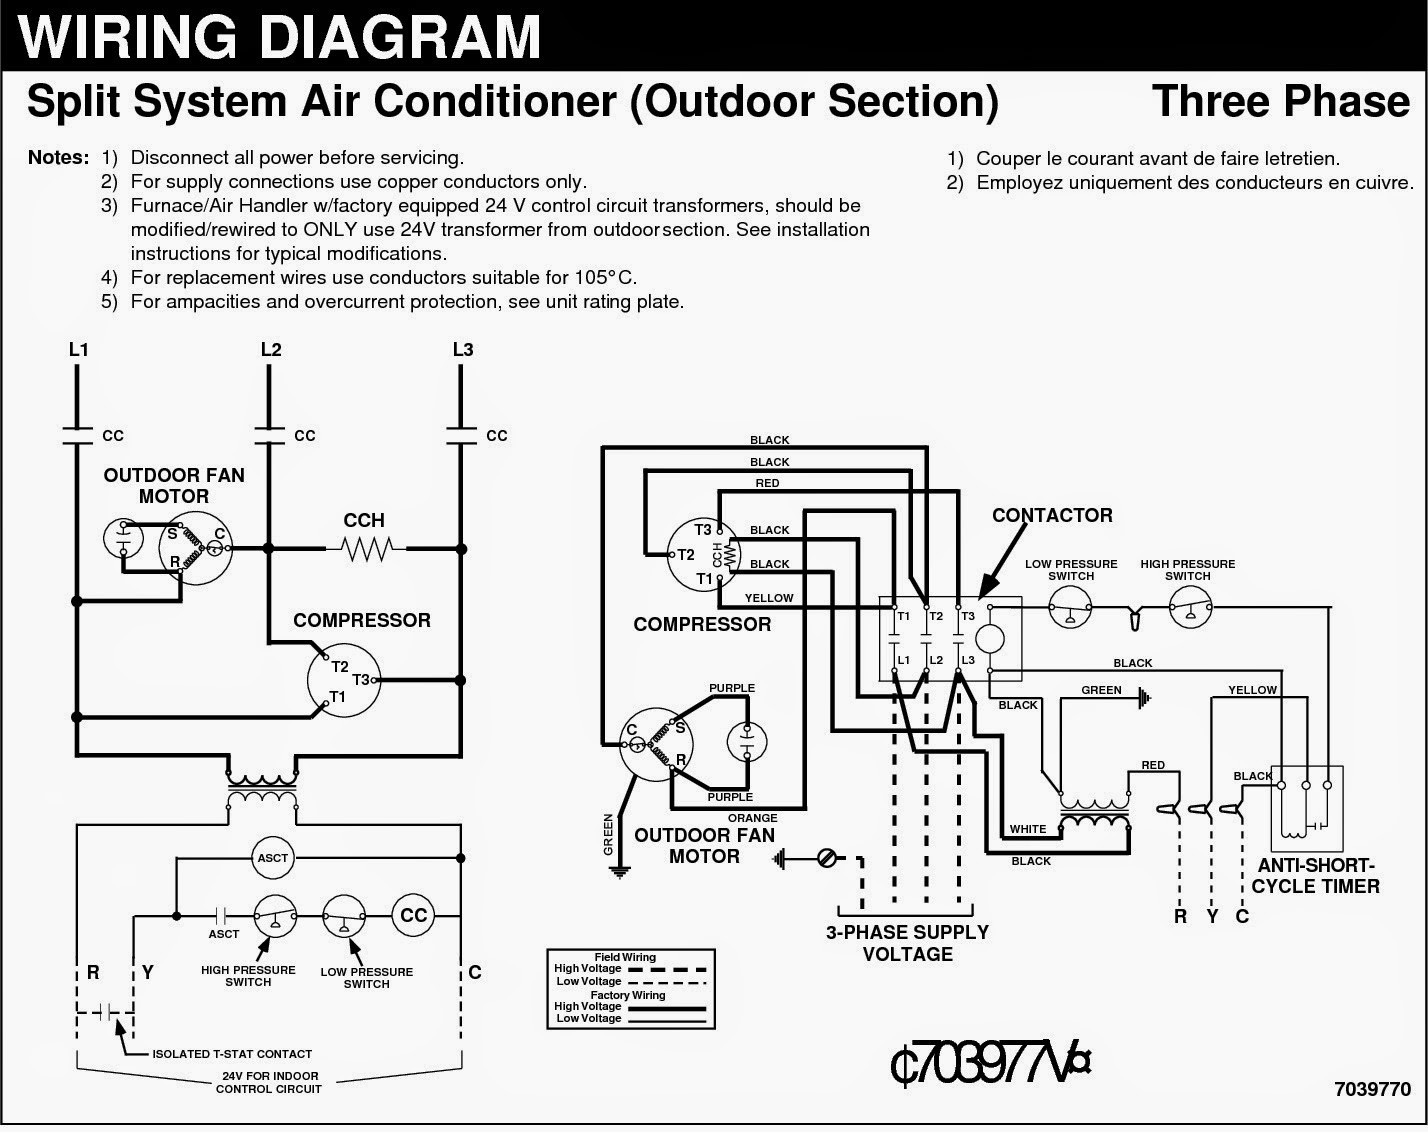 Ac Wiring Diagram Automotive 64 Impala Starter Electrical Diagrams For Air Conditioning Systems 04 Civic Corvette